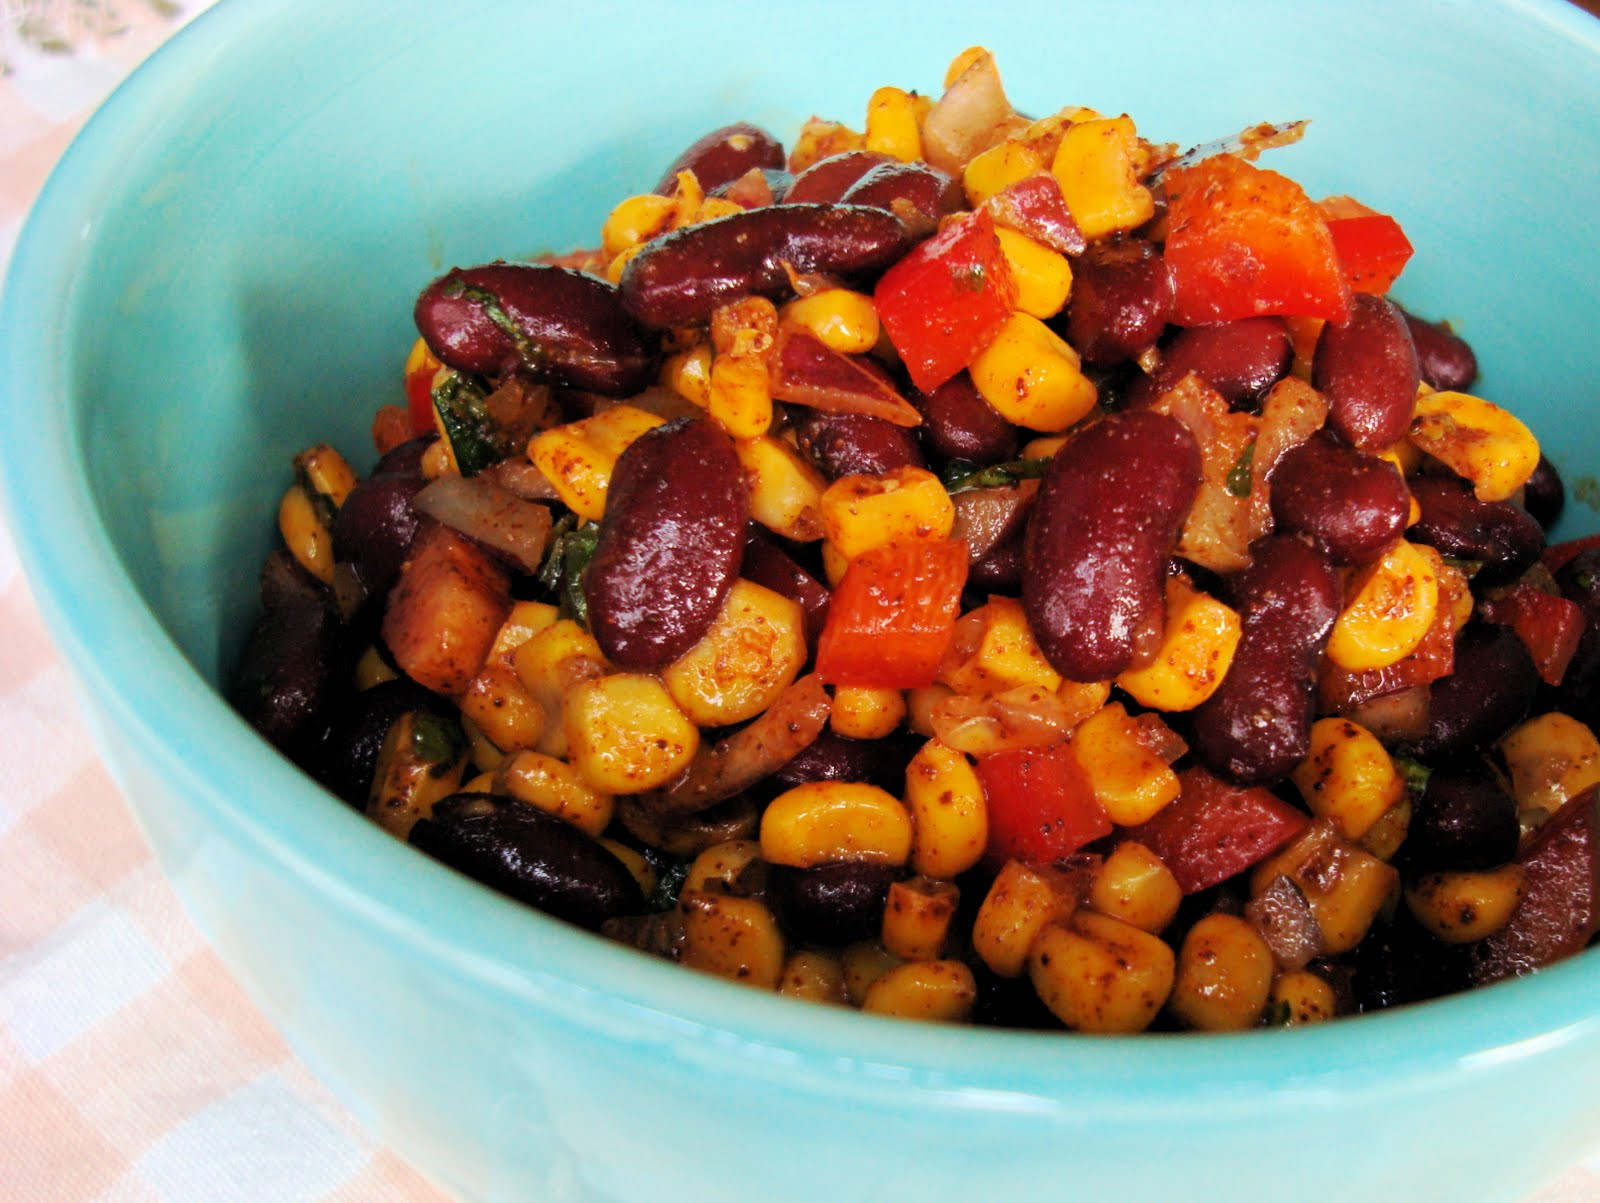 Healthy Kidney Bean Recipes 20 Of the Best Ideas for Kidney Beans Healthy Recipes with Kidney Beans